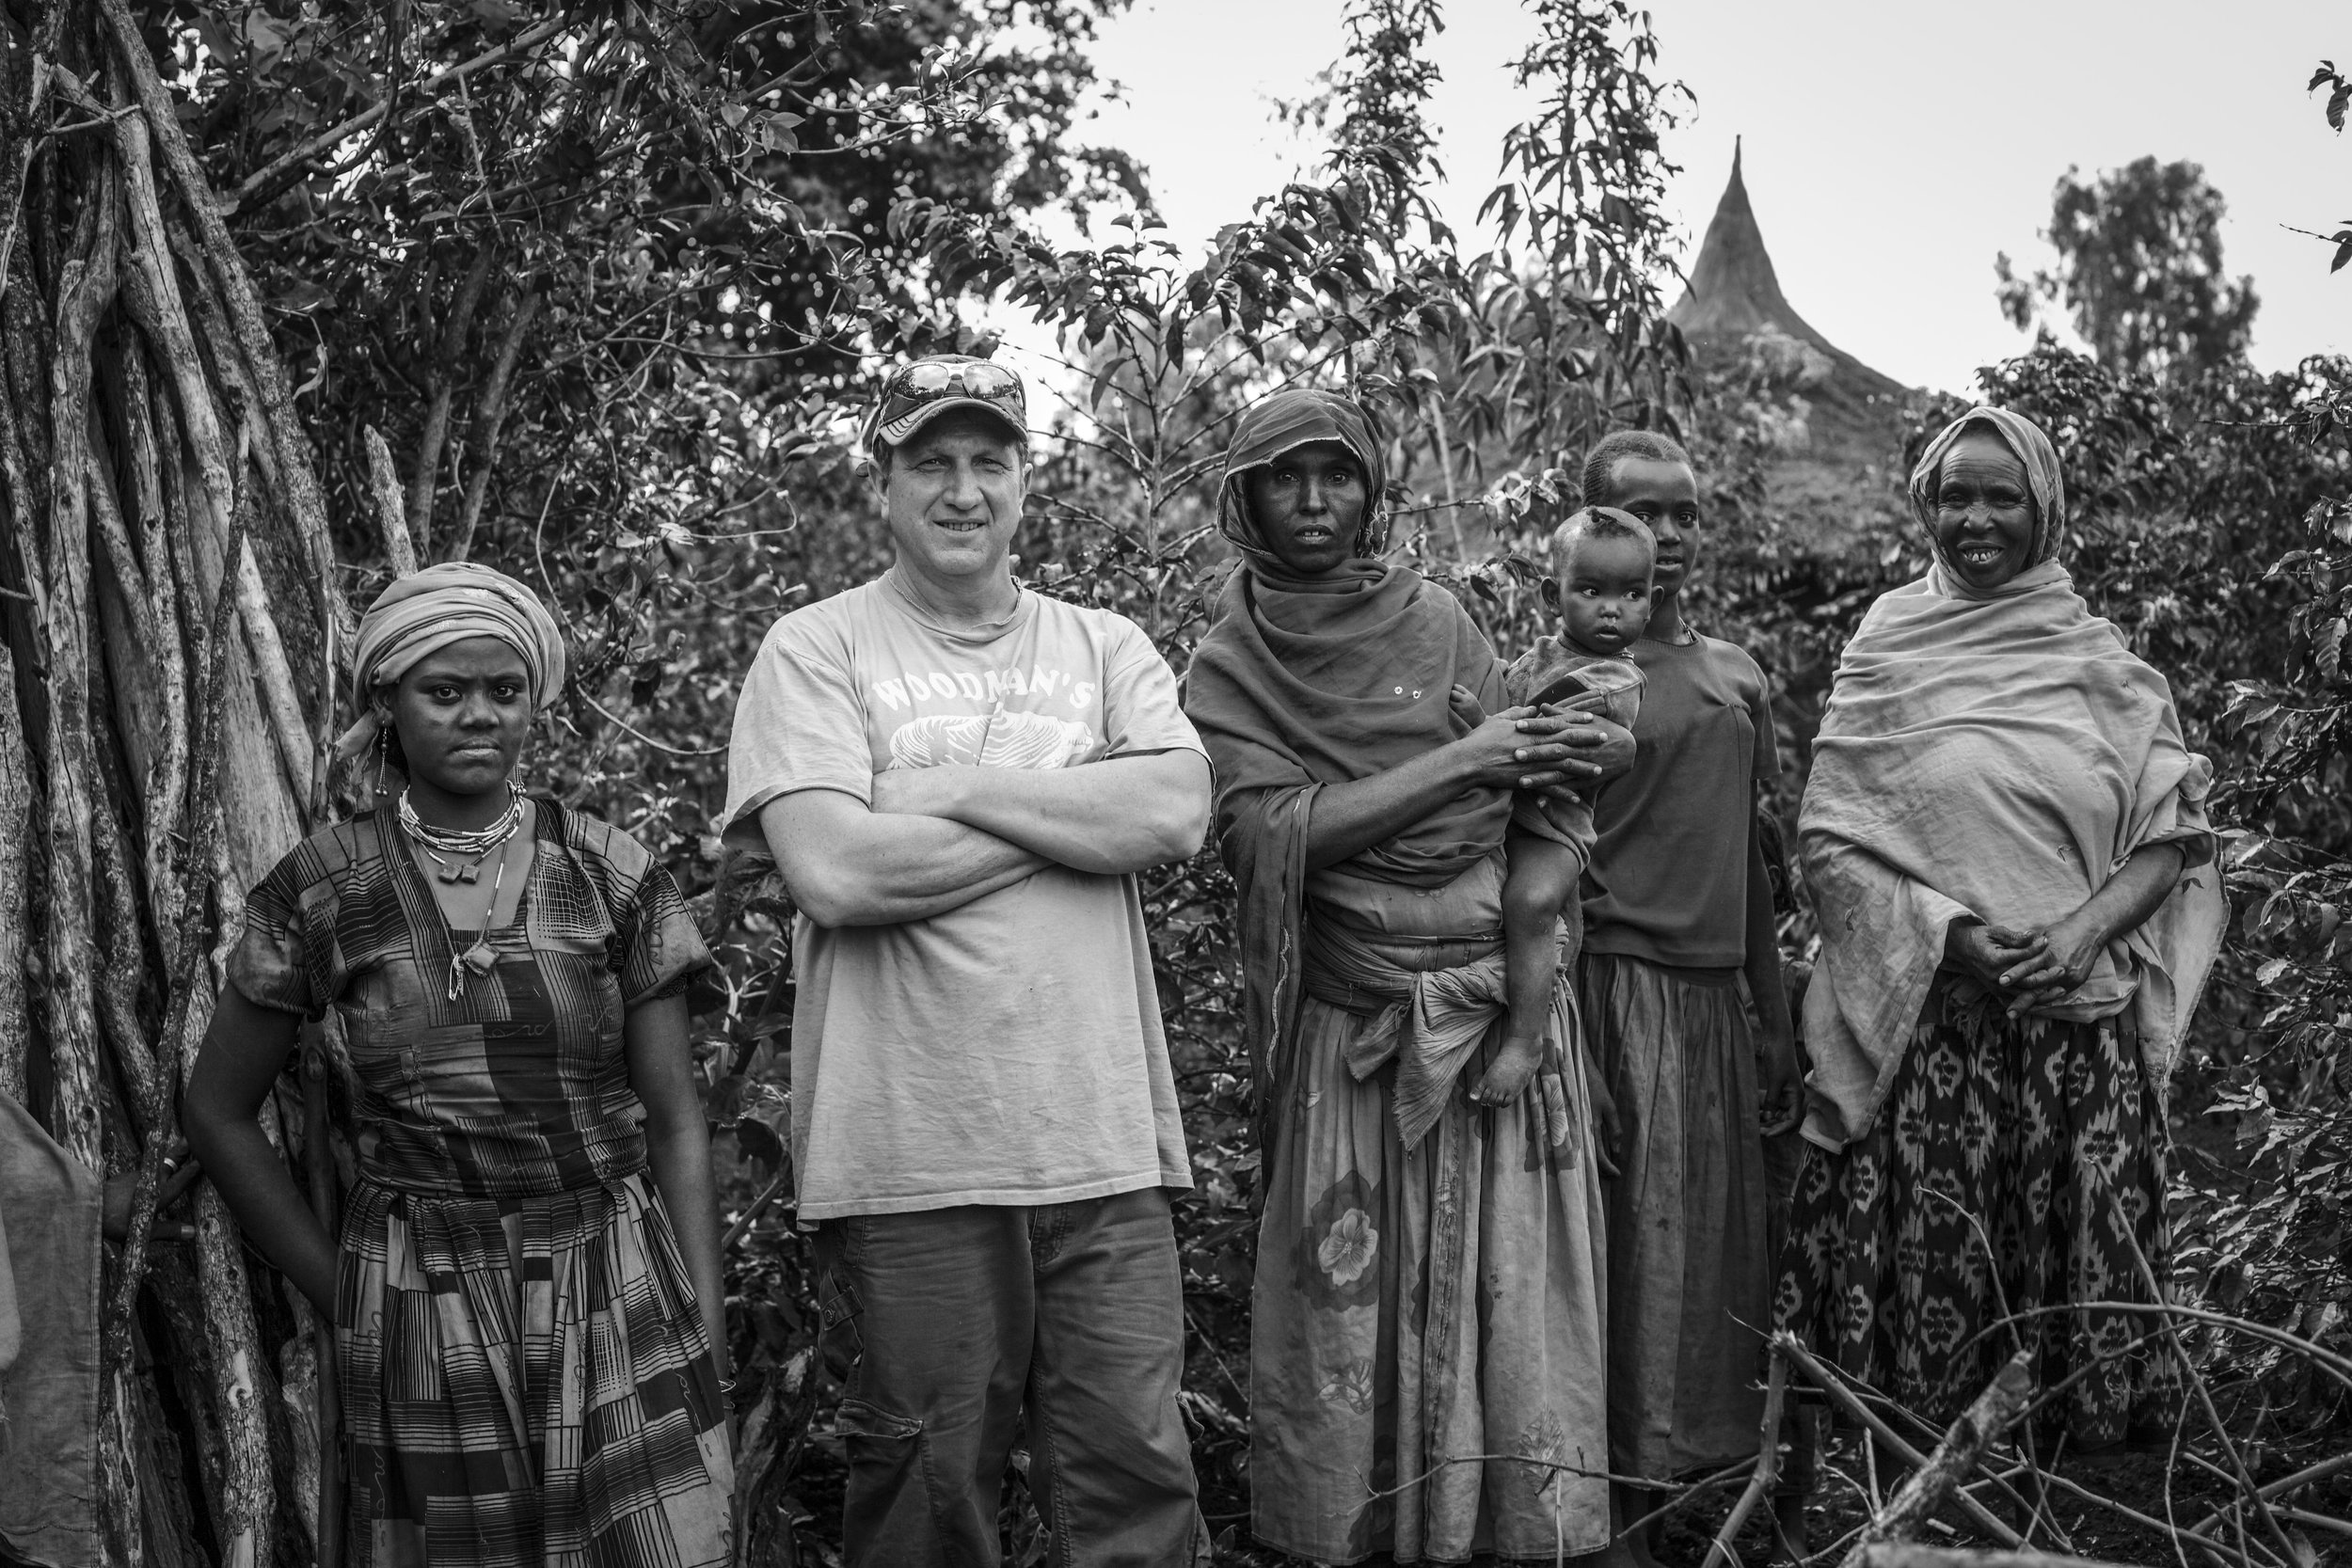 Founder Bob Weeks with the locals of Ethiopia